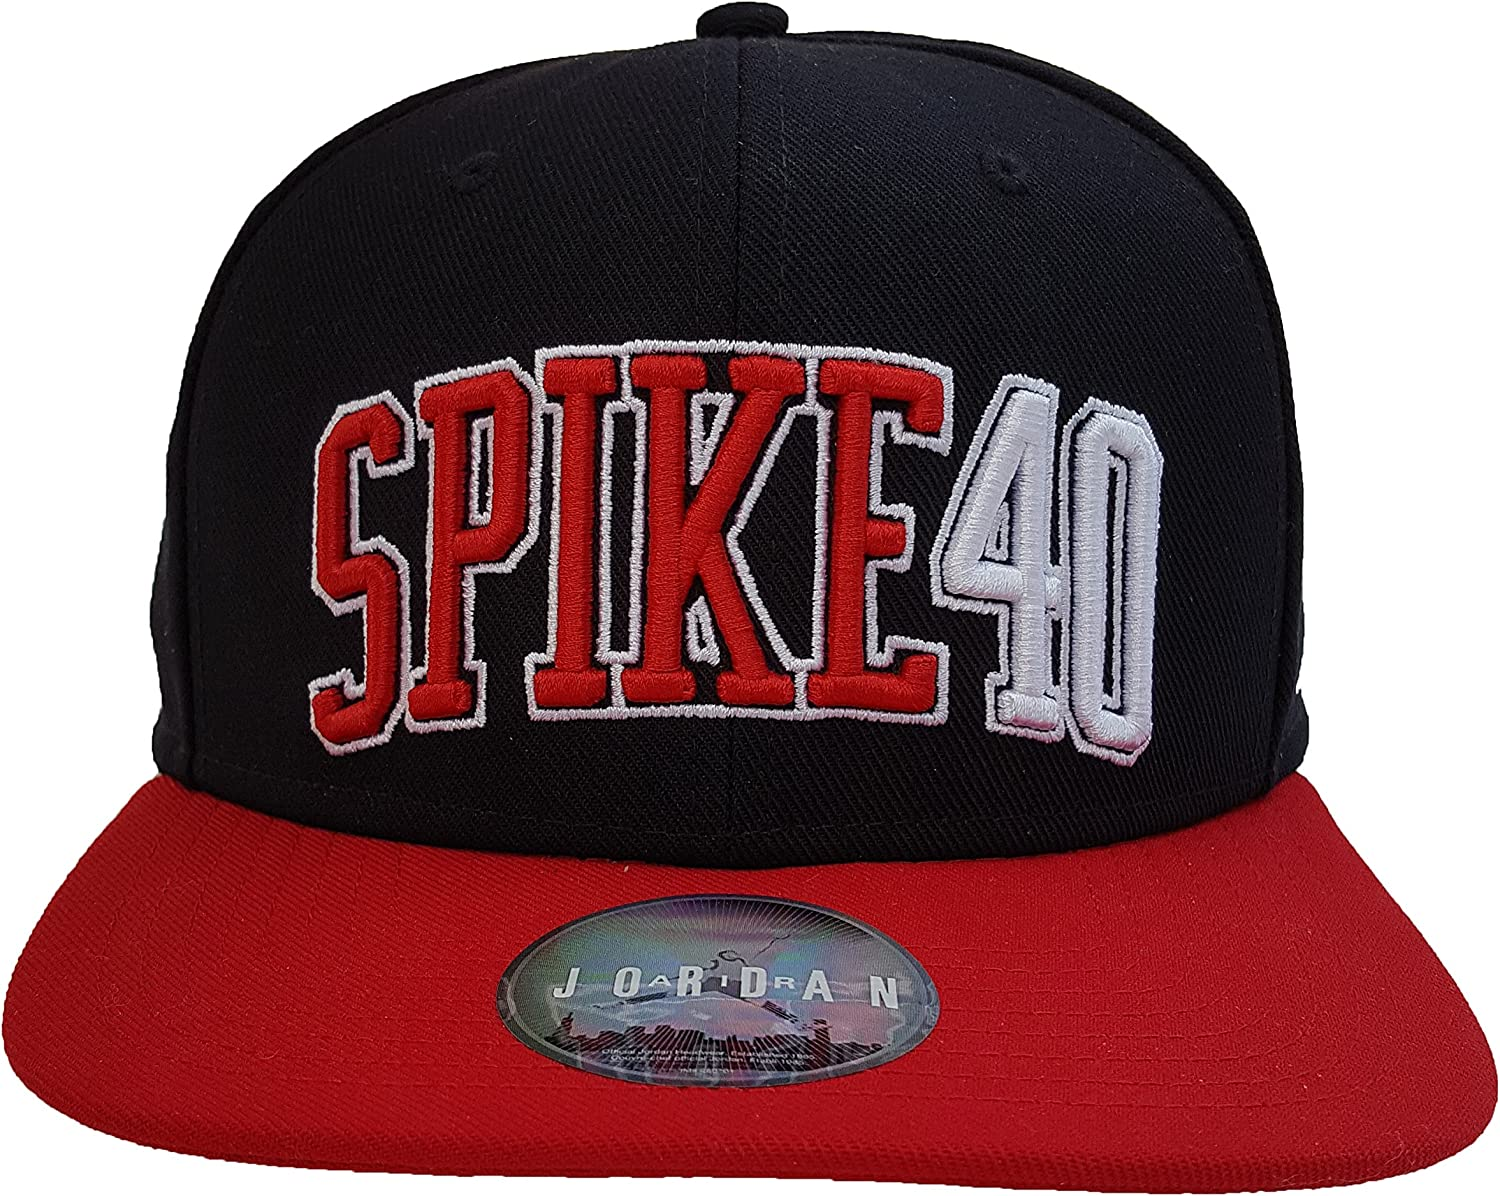 Gorra Nike Air Jordan Spike Lee 40: Amazon.es: Deportes y aire libre